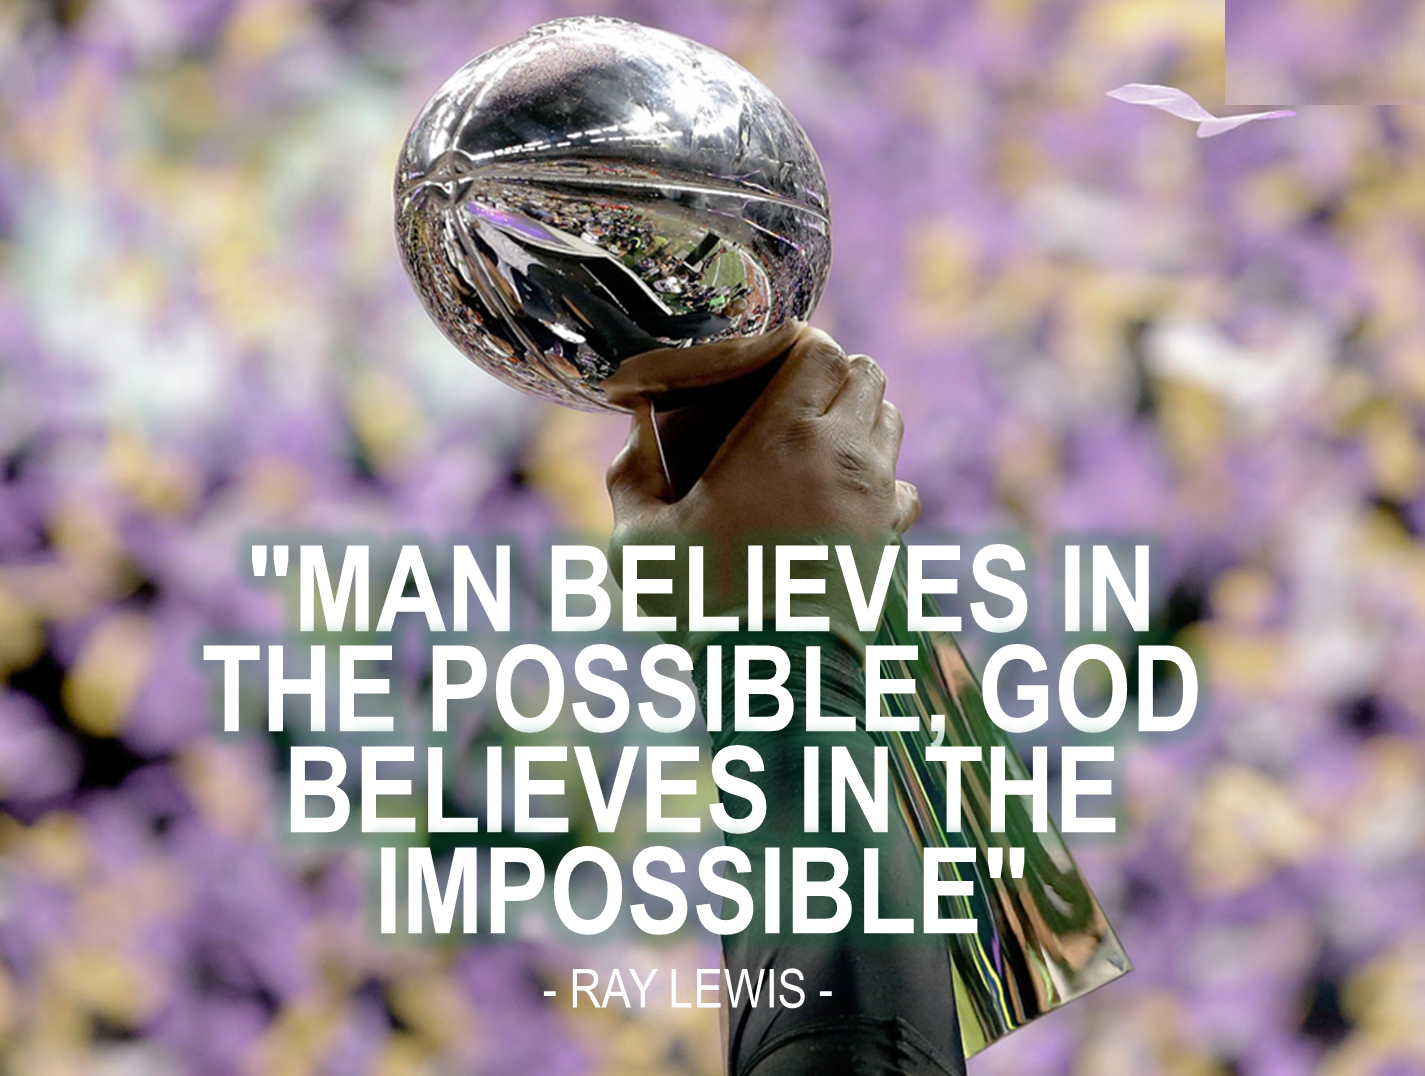 Famous Quotes From Ray Lewis Quotesgram: Famous Ray Lewis Quotes. QuotesGram